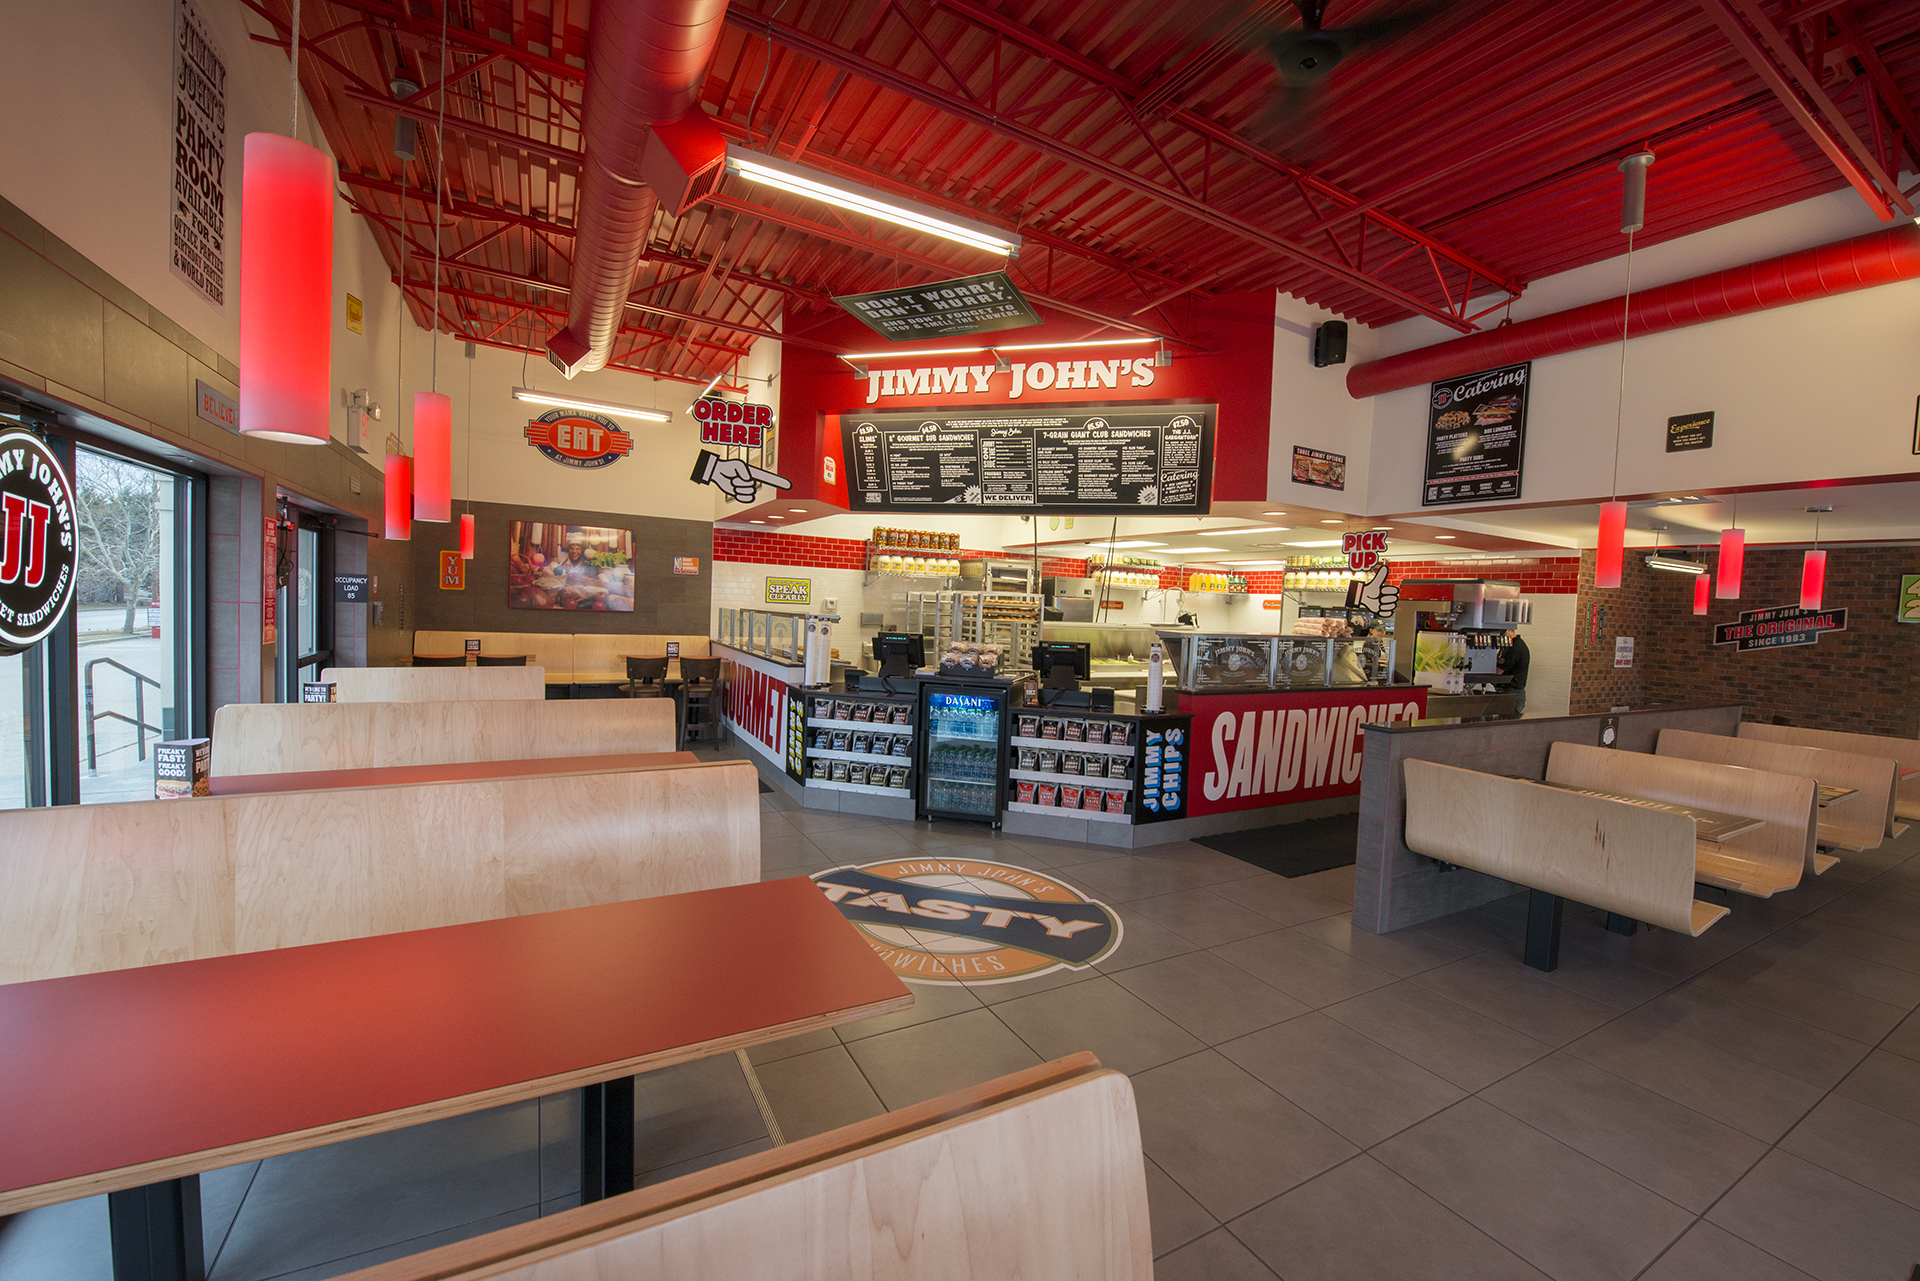 FileJimmy John Store Interior With New Design Launched